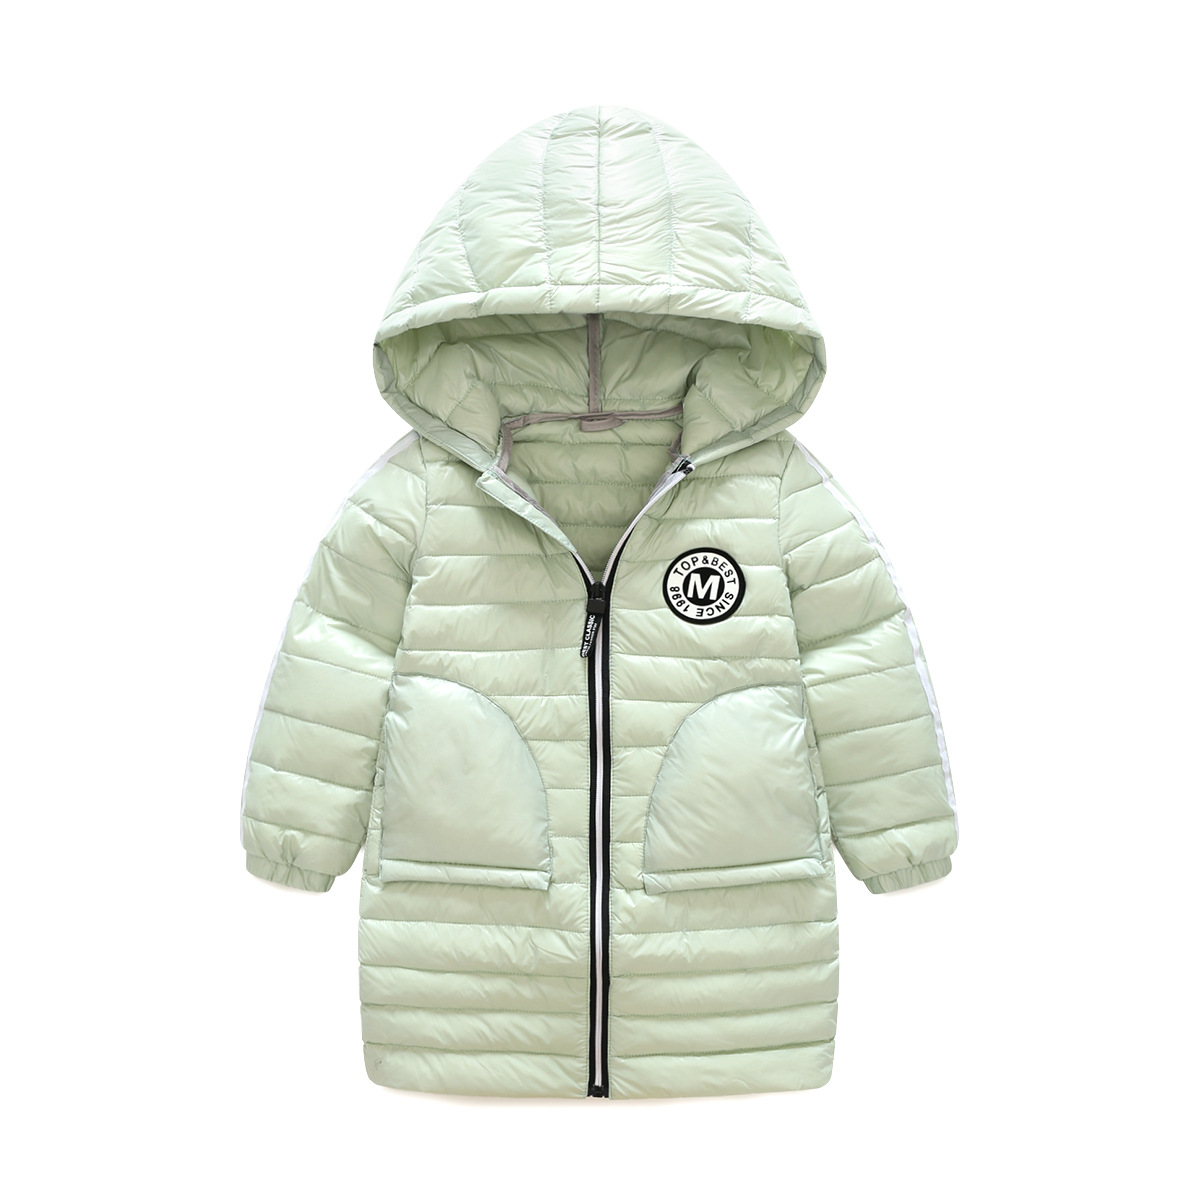 White Down Jacket Girls Small Children Warm Winter New Sleek Hooded Jacket In The Long Section of The Baby Thin Down Jacket Girl olgitum women s winter warm in the long section of slim was thin winter clothes tops down jacket big hair collar cc056